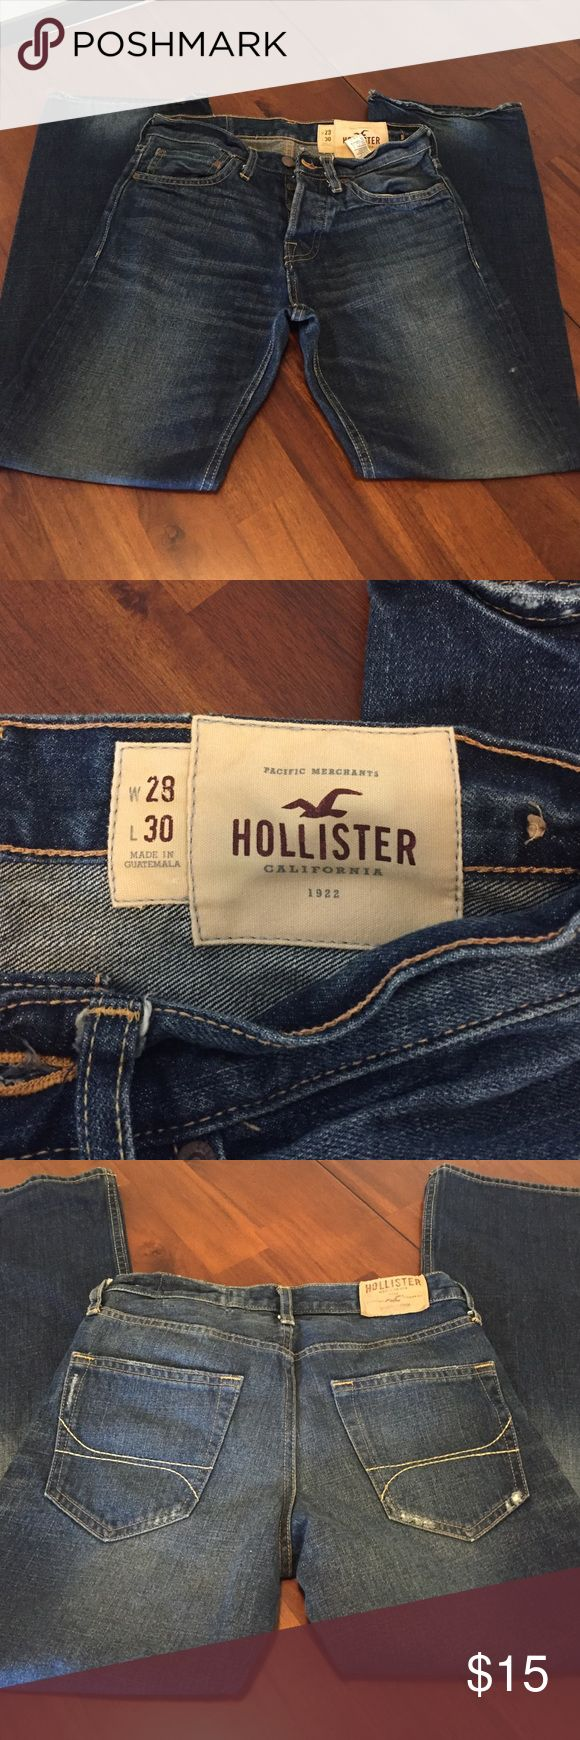 Hollister Low-rise Bootcut Denim Jeans Great condition! Slight wear at lower heel as pictured. 28W x 30L. Low-rise Bootcut. 100% cotton. These are men's Hermosa style. Hollister Jeans Bootcut